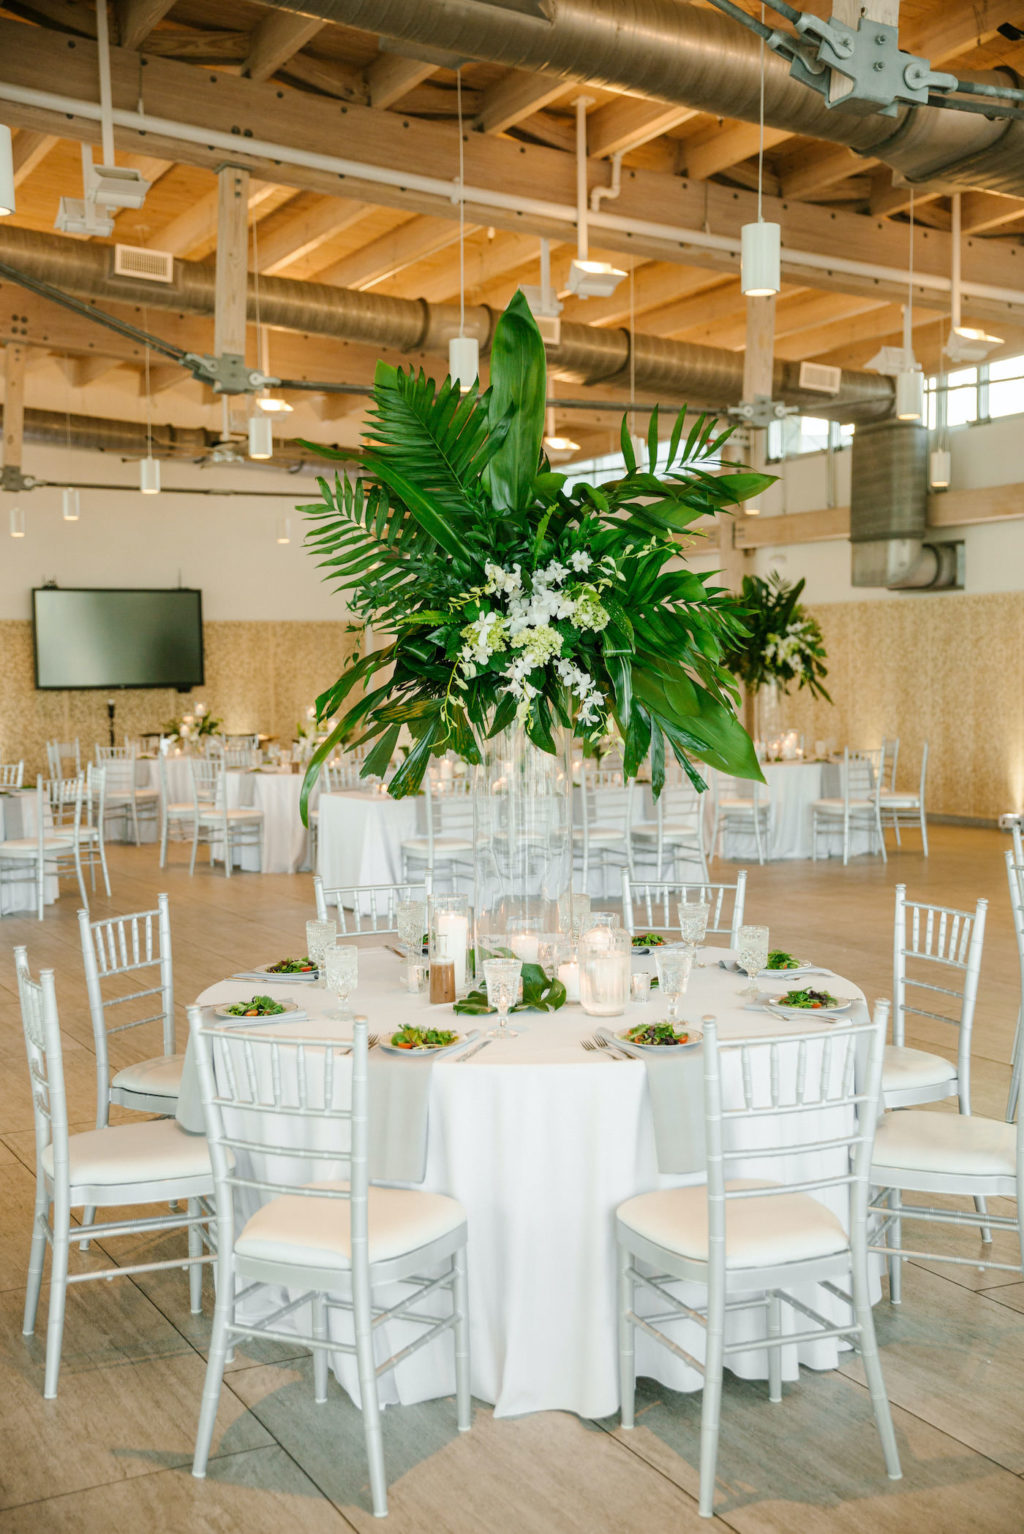 Tropical Tampa Florida Wedding Reception | White Wedding Reception Table with Silver Chiavari Chairs and Tall Tropical Palm Leaf Centerpiece with White Orchids | Tampa Wedding Florist Bruce Wayne Florals